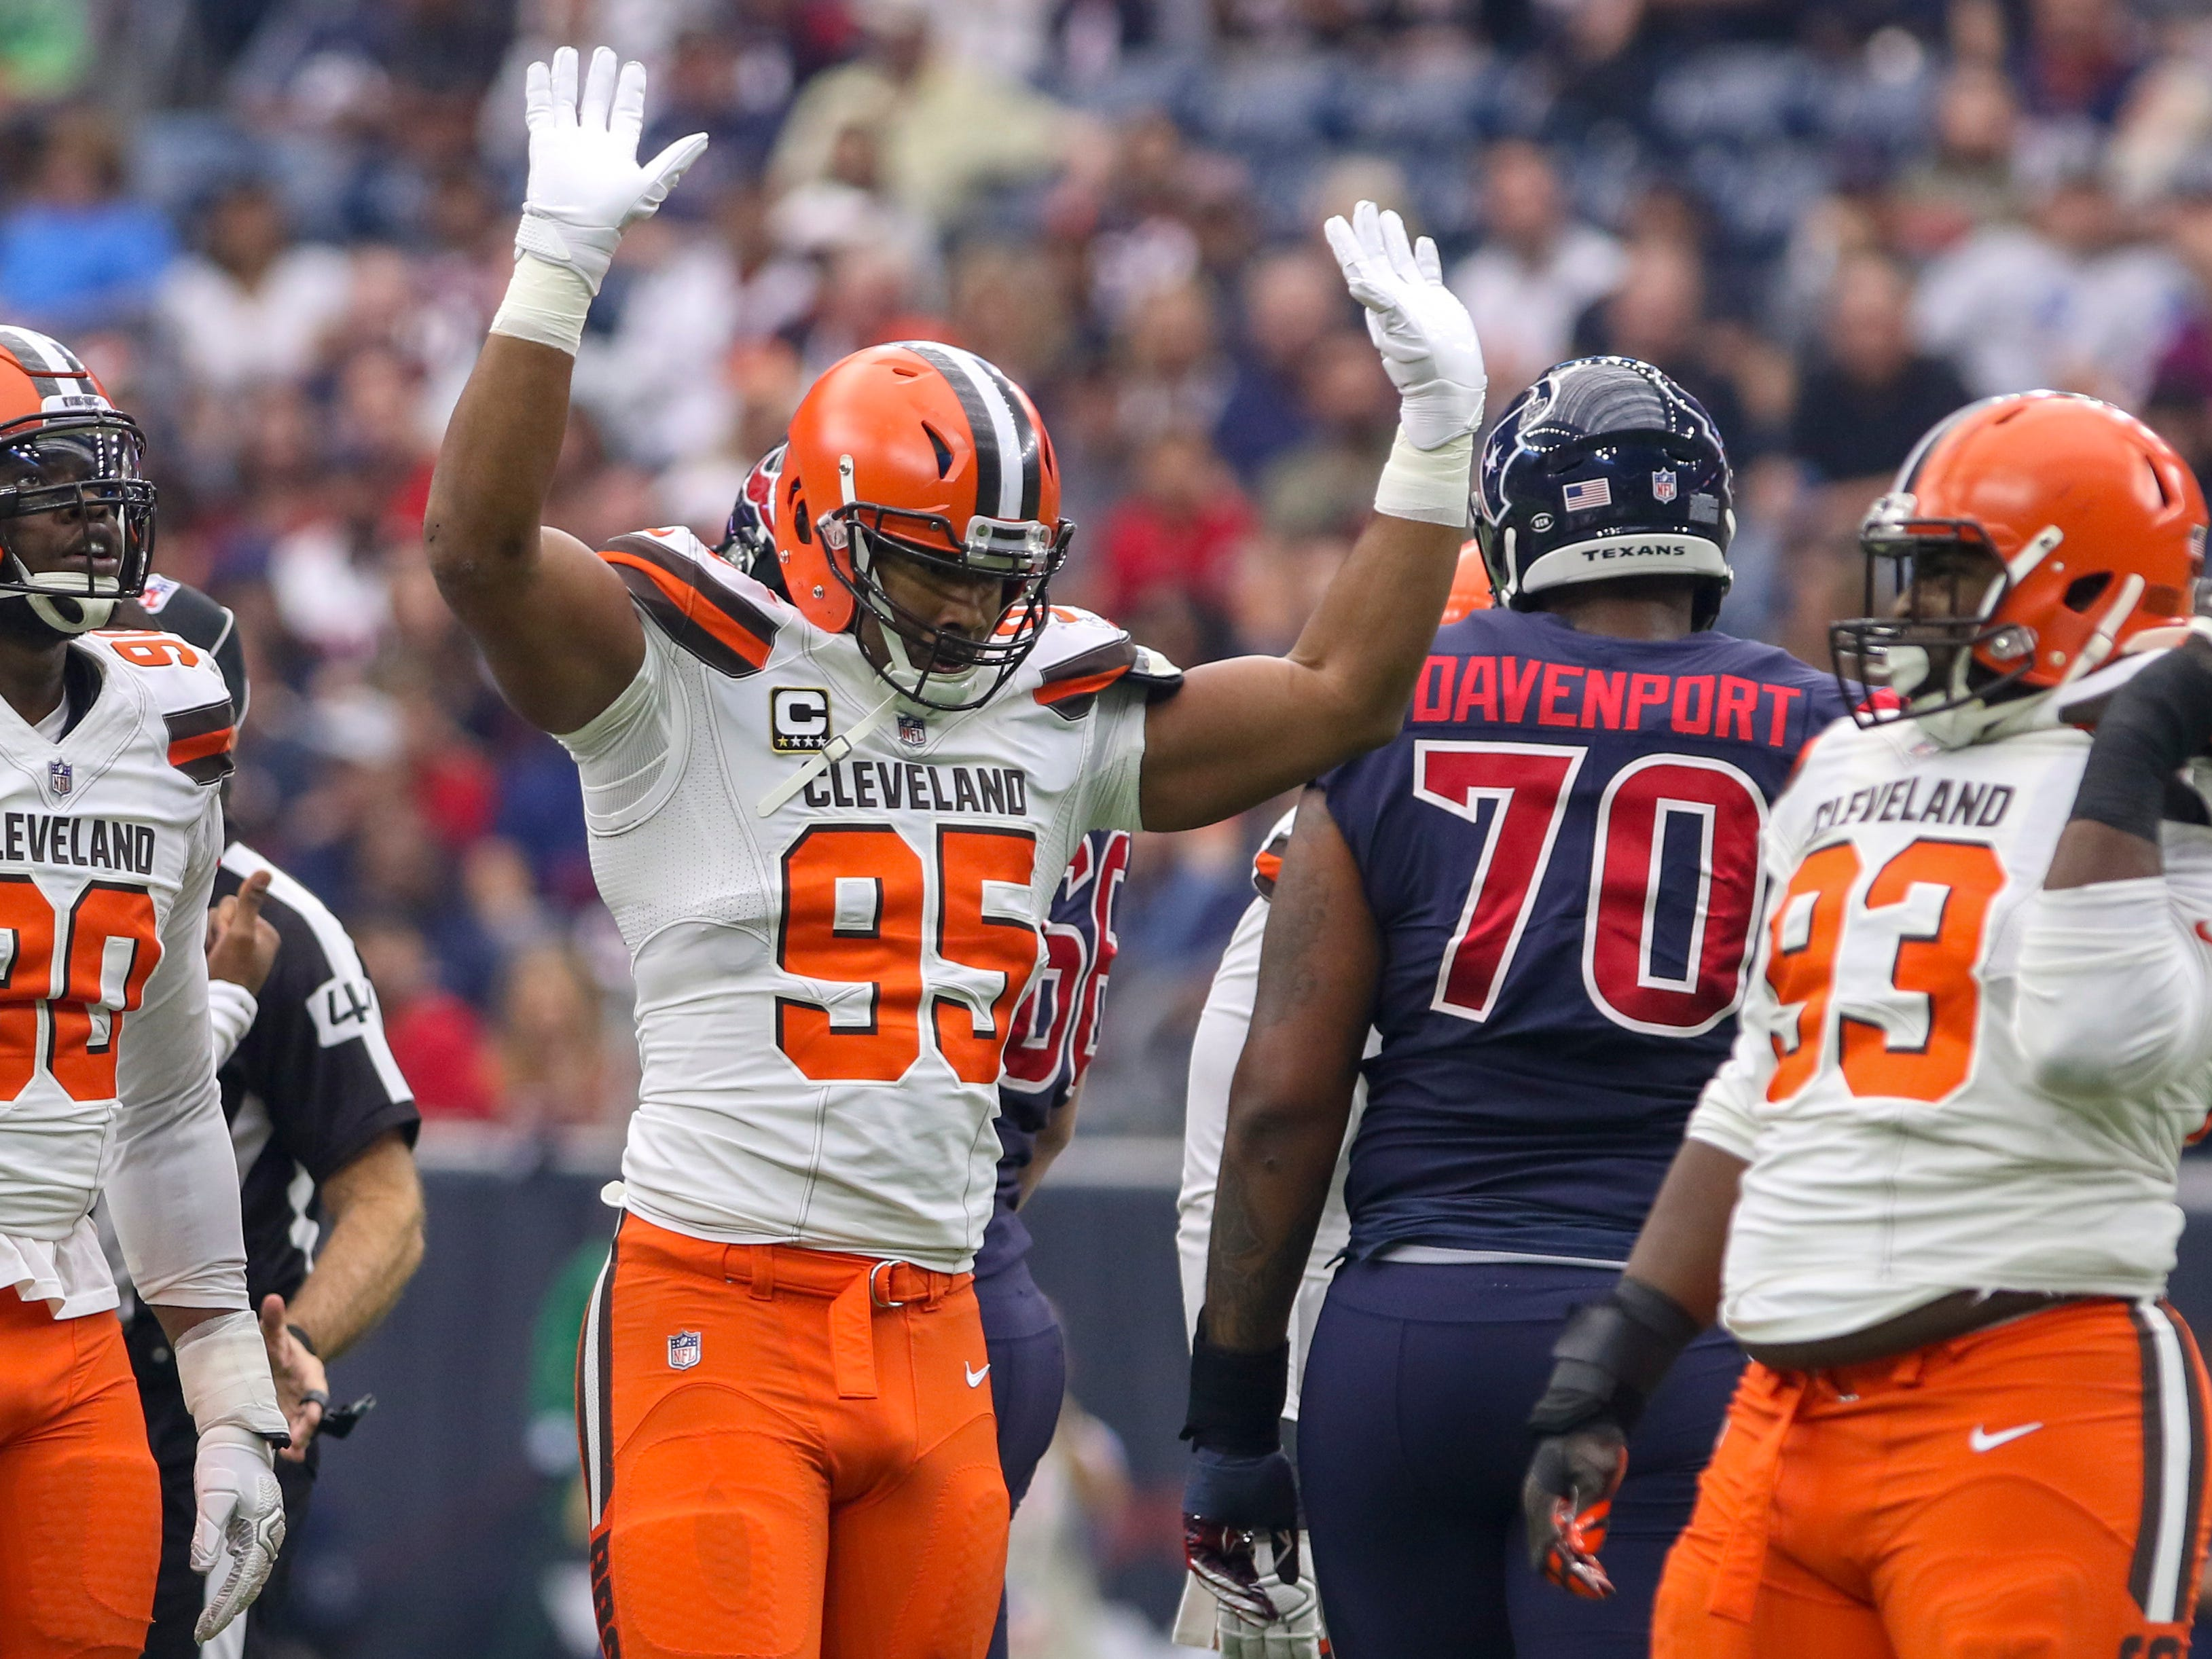 Dec 2, 2018; Houston, TX, USA; Cleveland Browns defensive end Myles Garrett (95) celebrates after recording a sack during the first quarter Houston Texans at NRG Stadium. Mandatory Credit: John Glaser-USA TODAY Sports ORG XMIT: USATSI-381566 ORIG FILE ID:  20181202_lbm_ga2_049.JPG